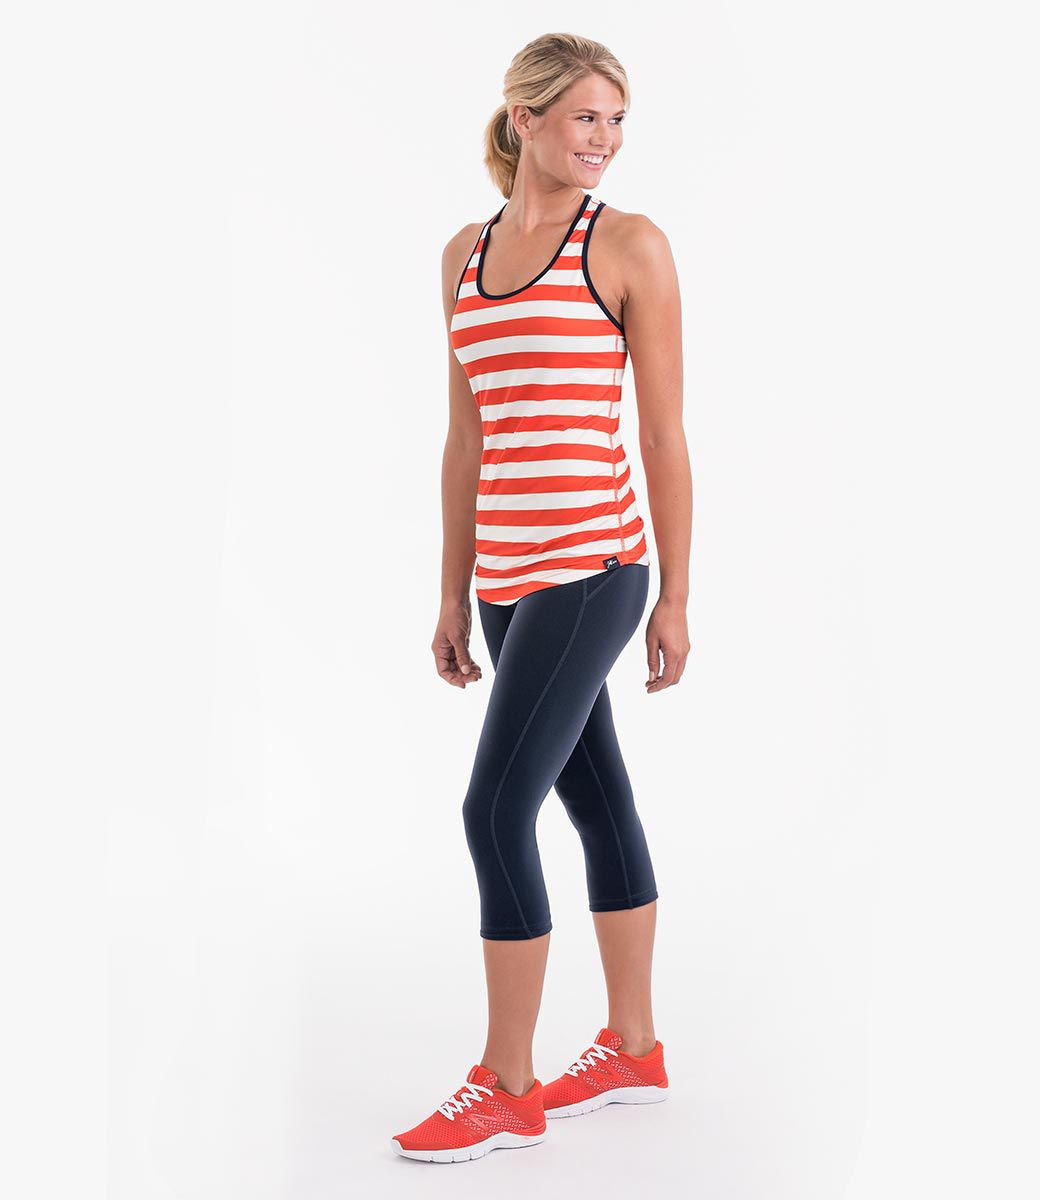 New Balance US Womens October JCrew Outfit 9,